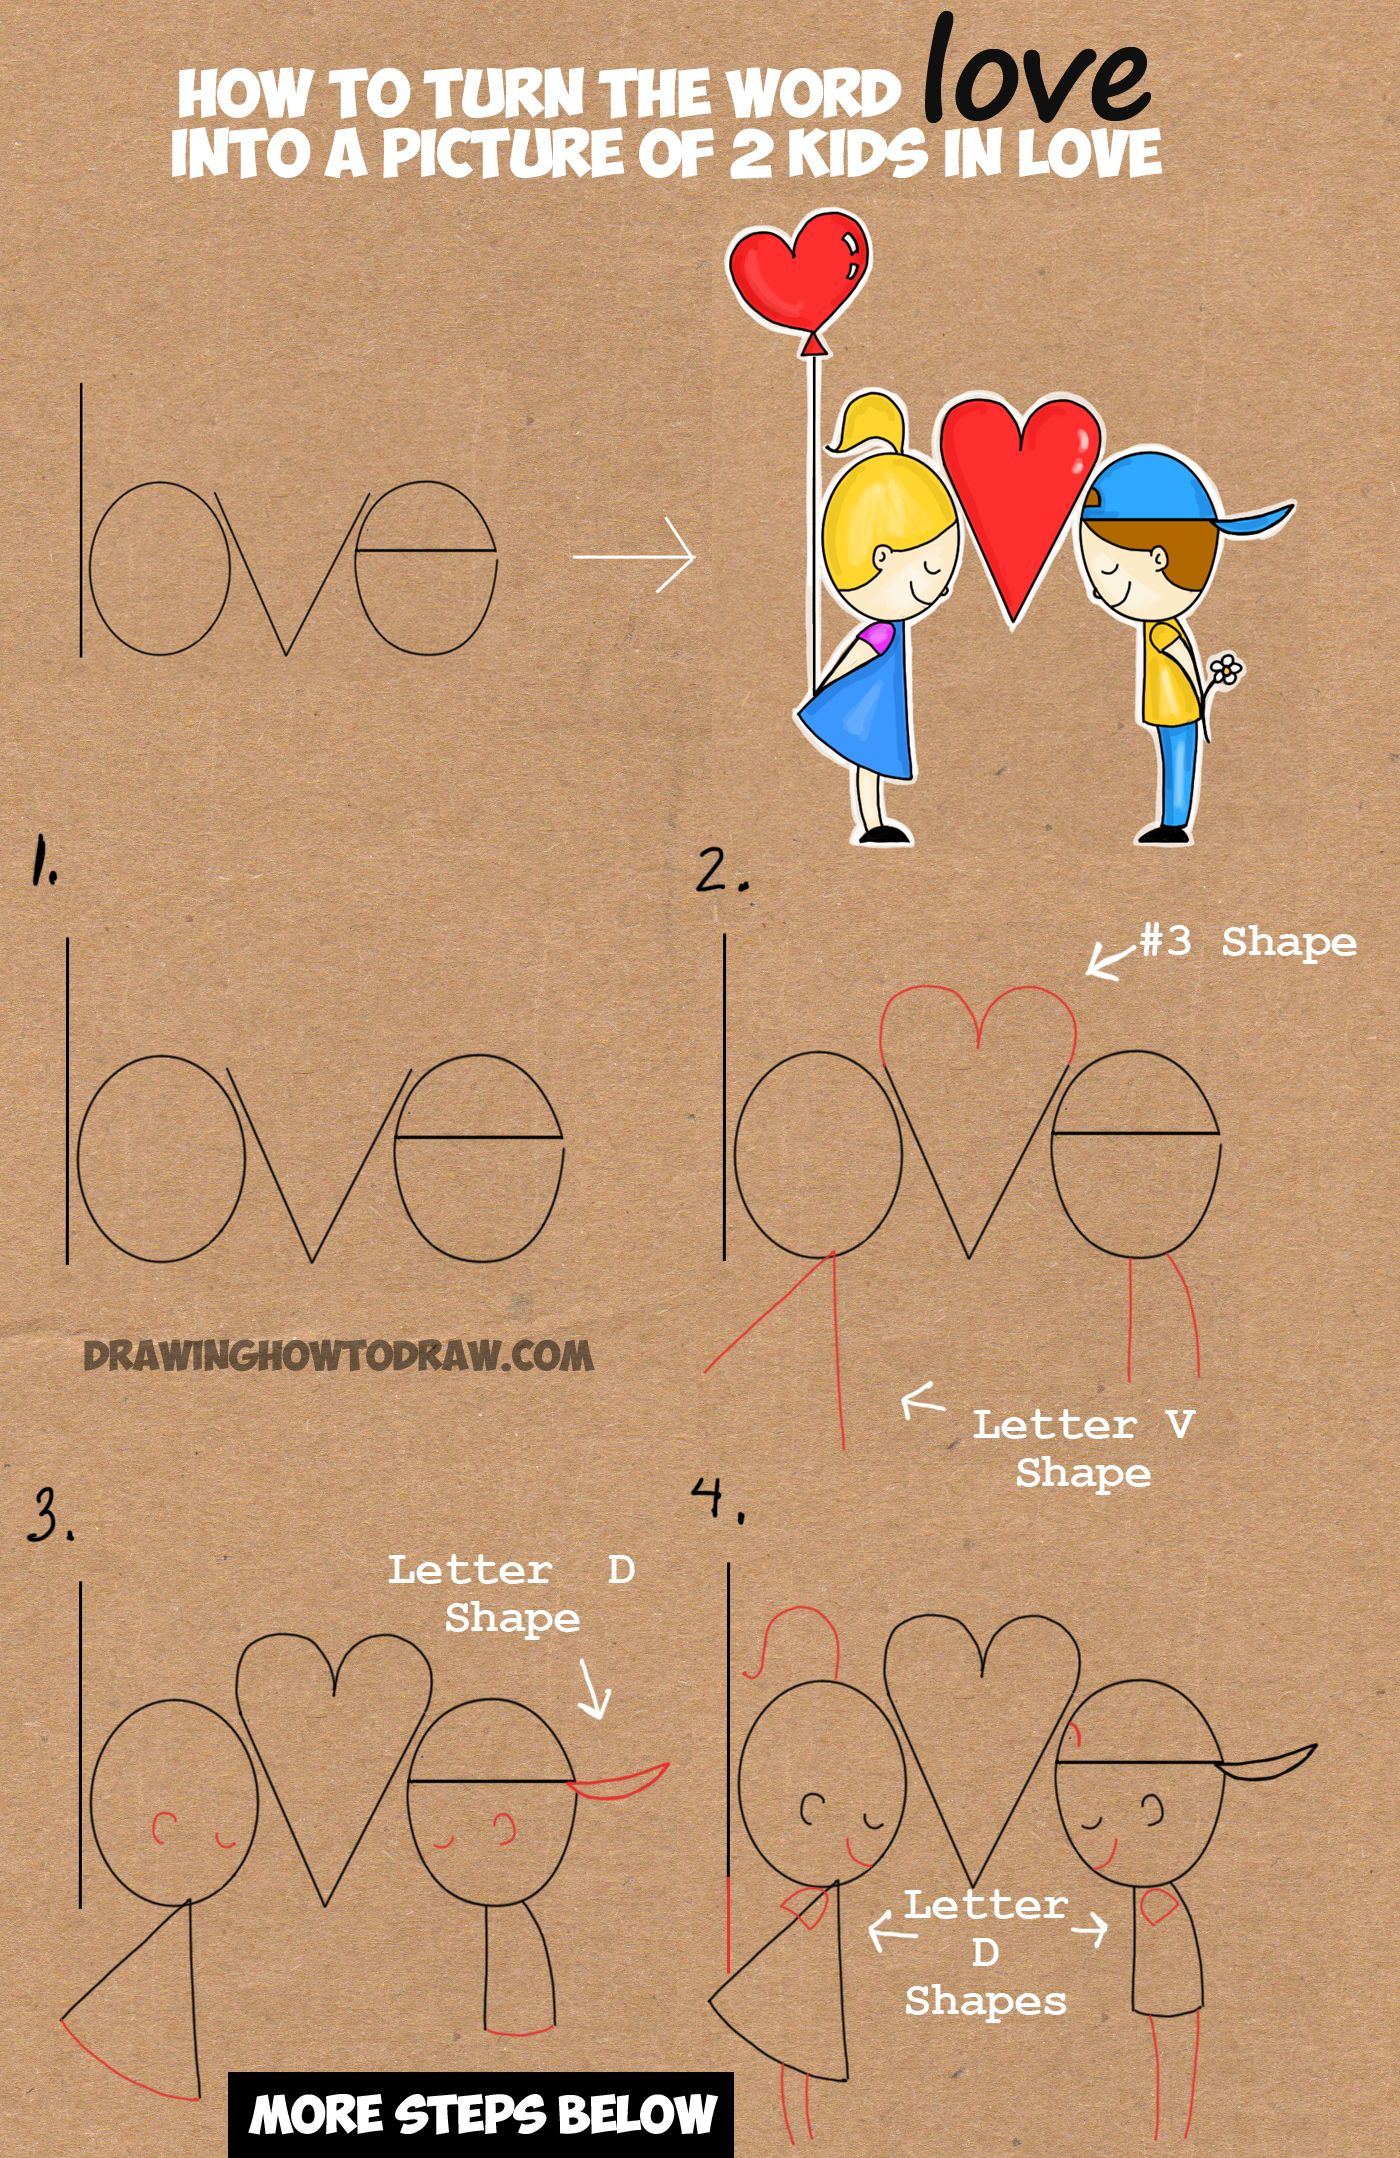 How To Draw Cartoon Kids In Love From The Word Love In This Easy Words Cartoon Drawing Tutorial For Kids How To Draw Step By Step Drawing Tutorials Word Drawings